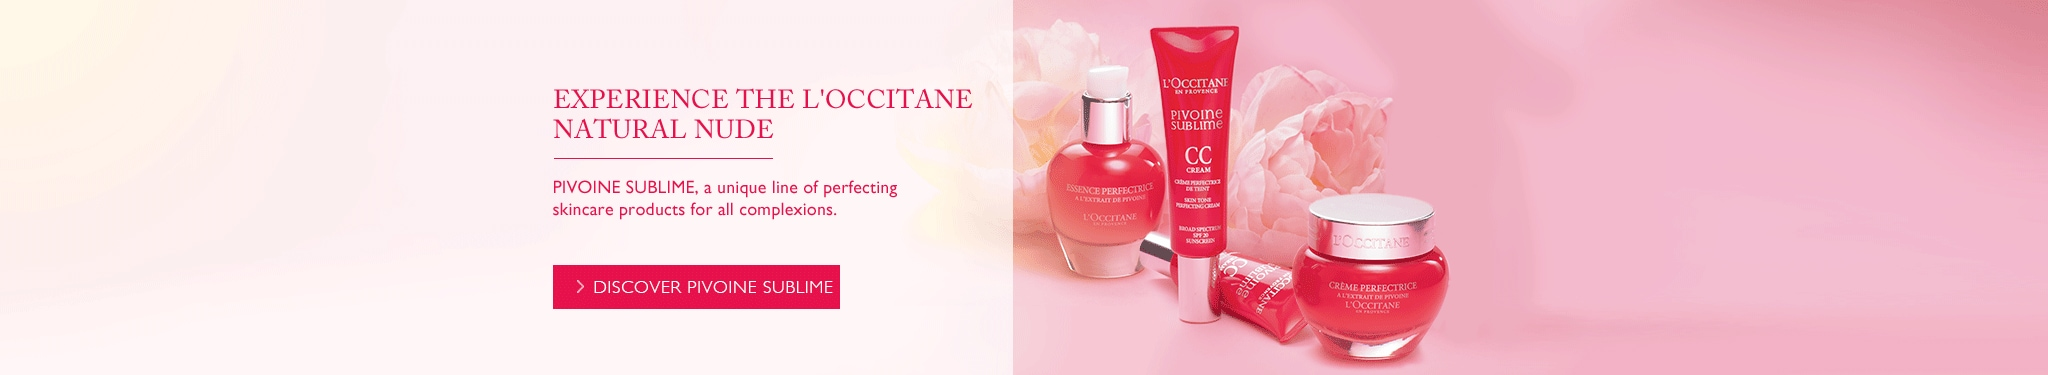 L'Occitane Middle East